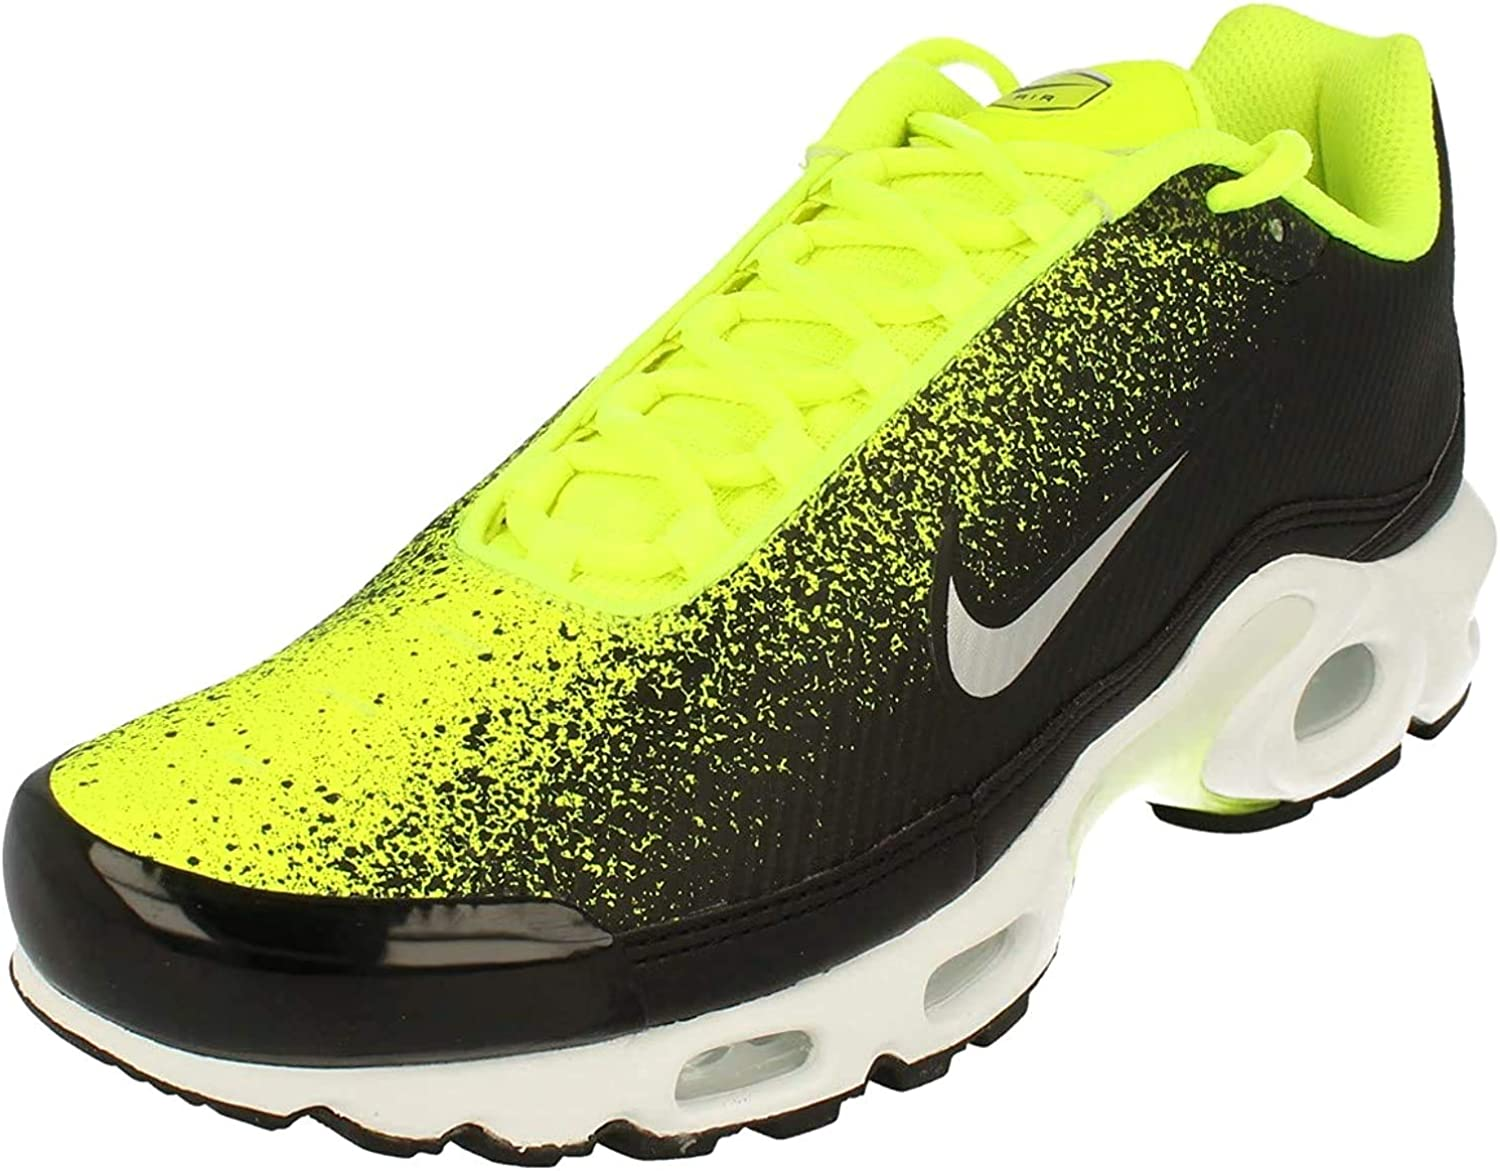 Nike Air Max Plus TN Se Hommes Running Trainers Ci7701 Sneakers Chaussures